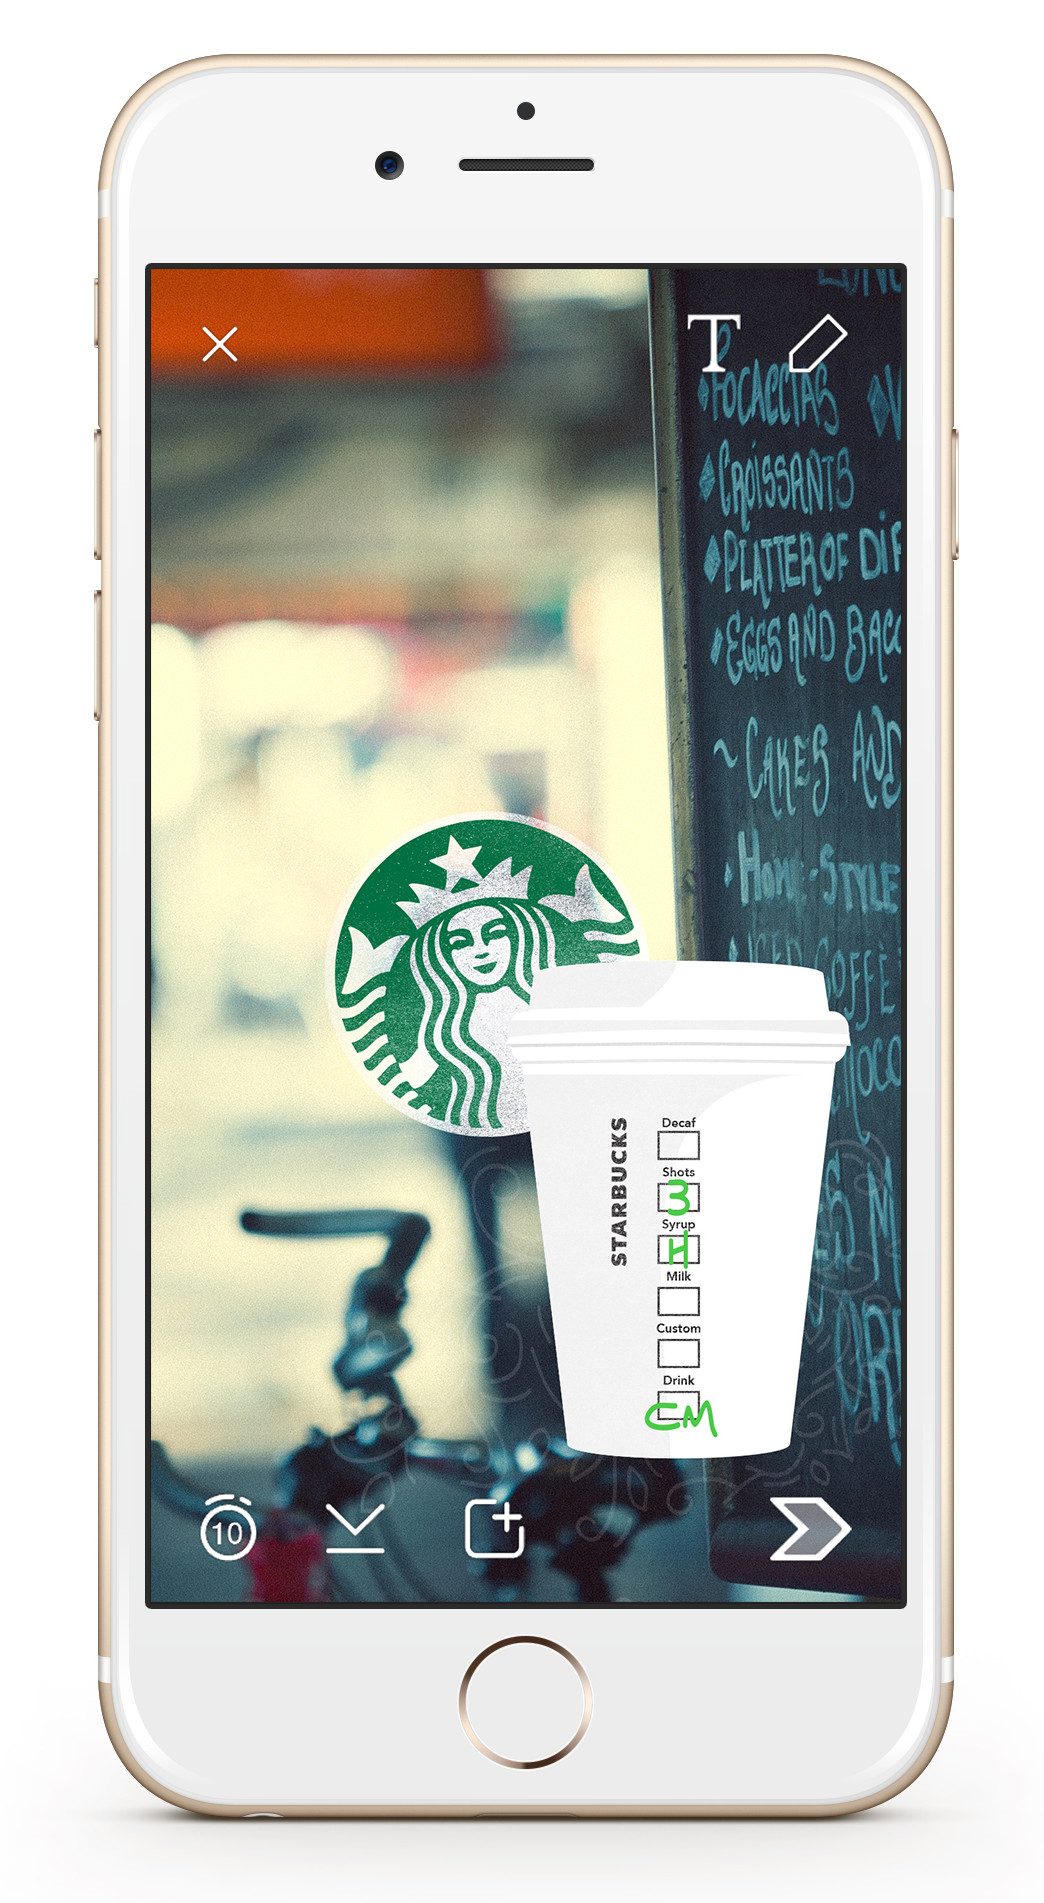 iPhone-Iso-Starbucks-e1436909688698